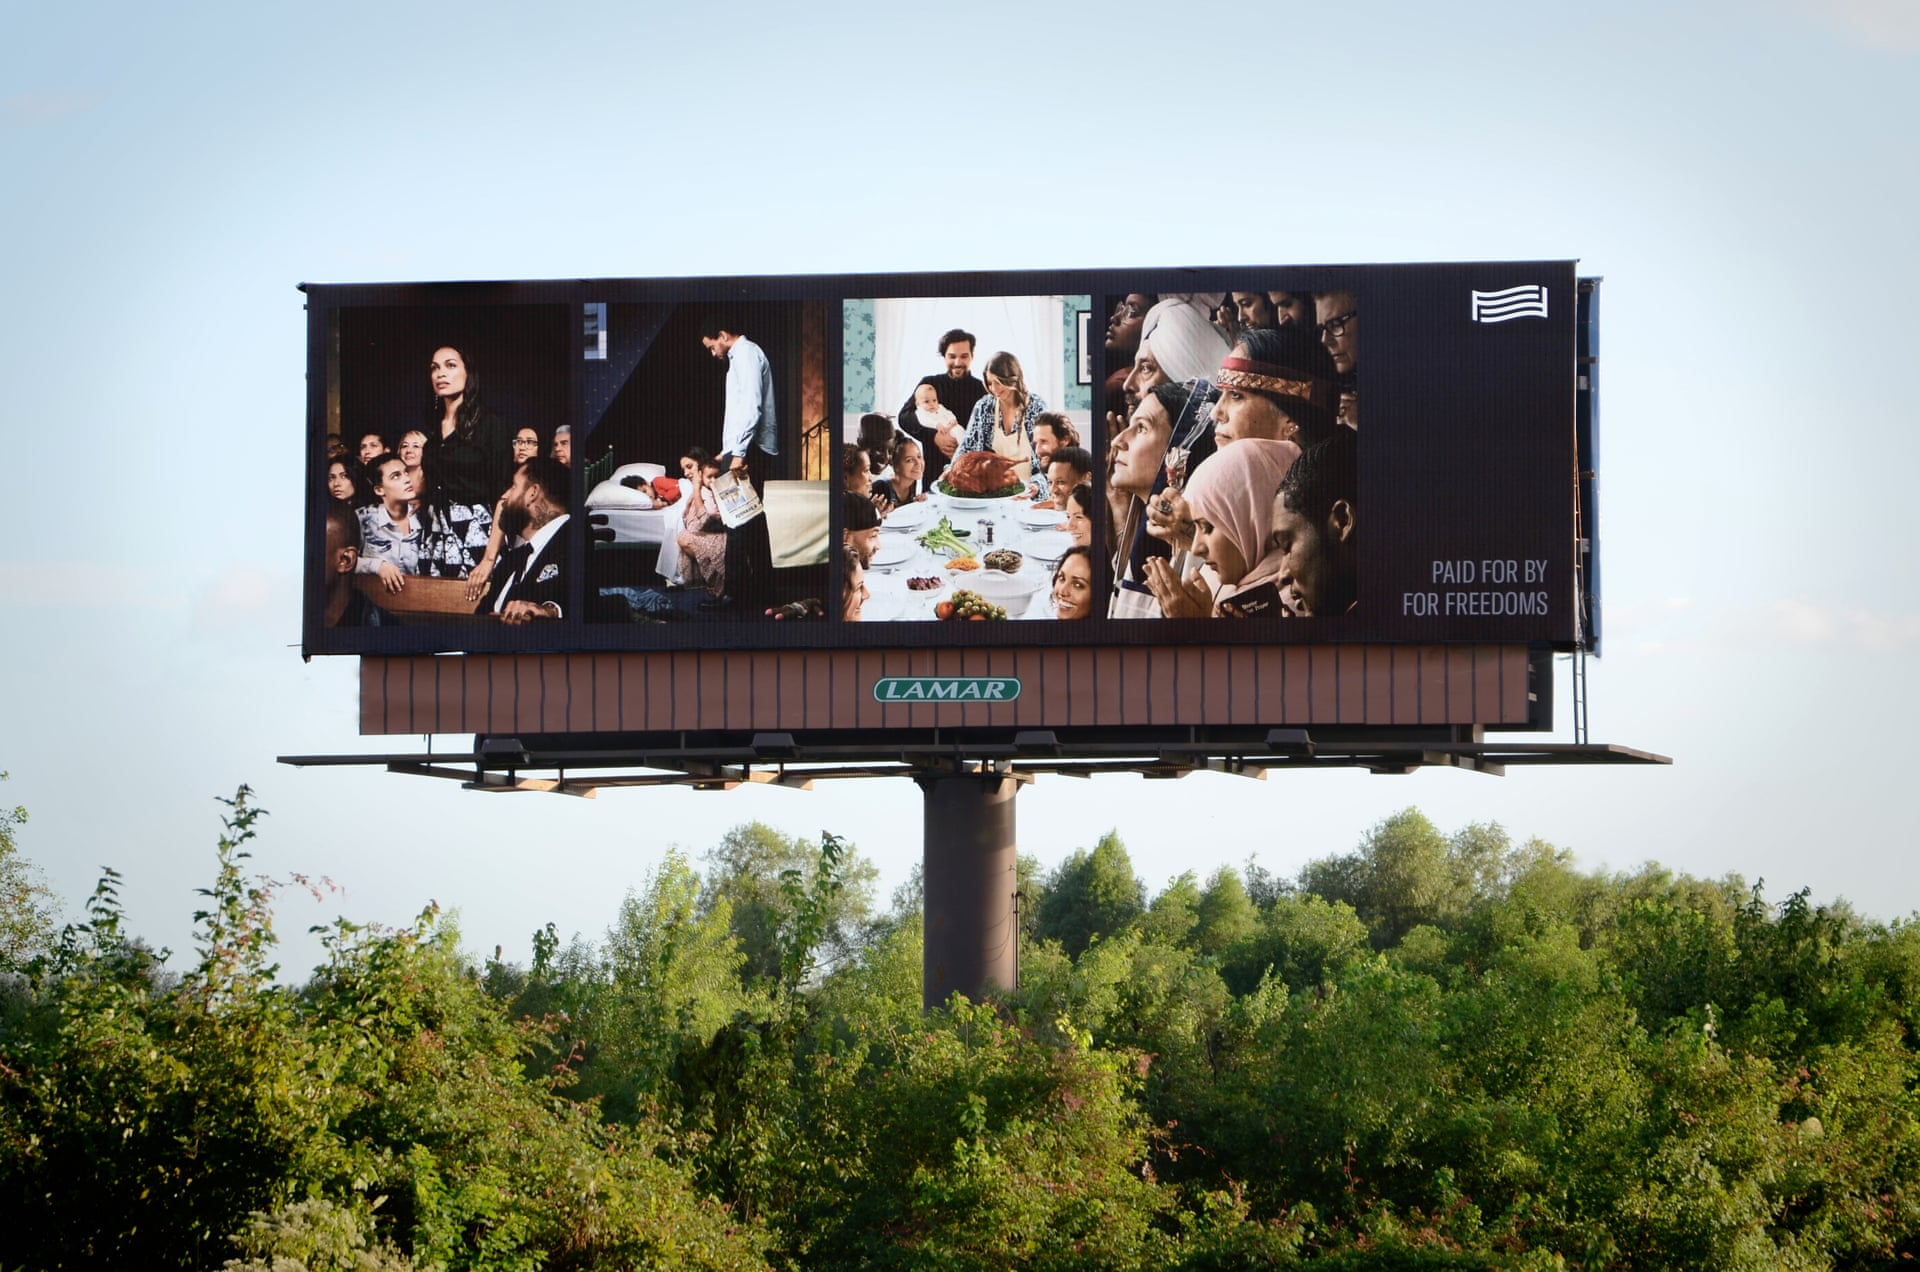 For Freedoms, 50 State Initiative, billboard art, political art, 2018 elections, Donald Trump